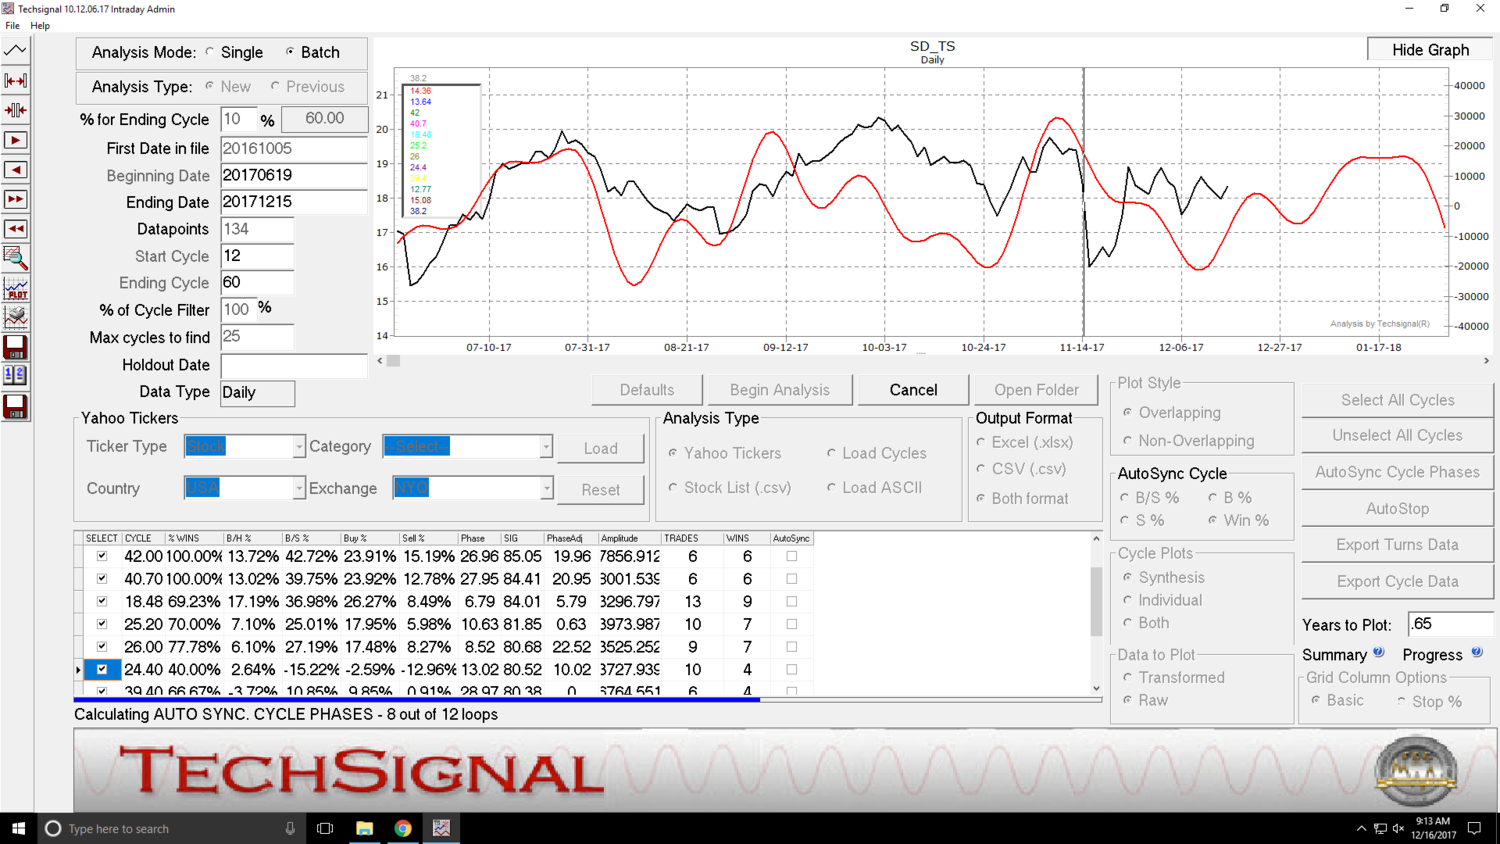 Techsignal 10 Admin End-of-Day Unlimited Commercial Version with AutoScan